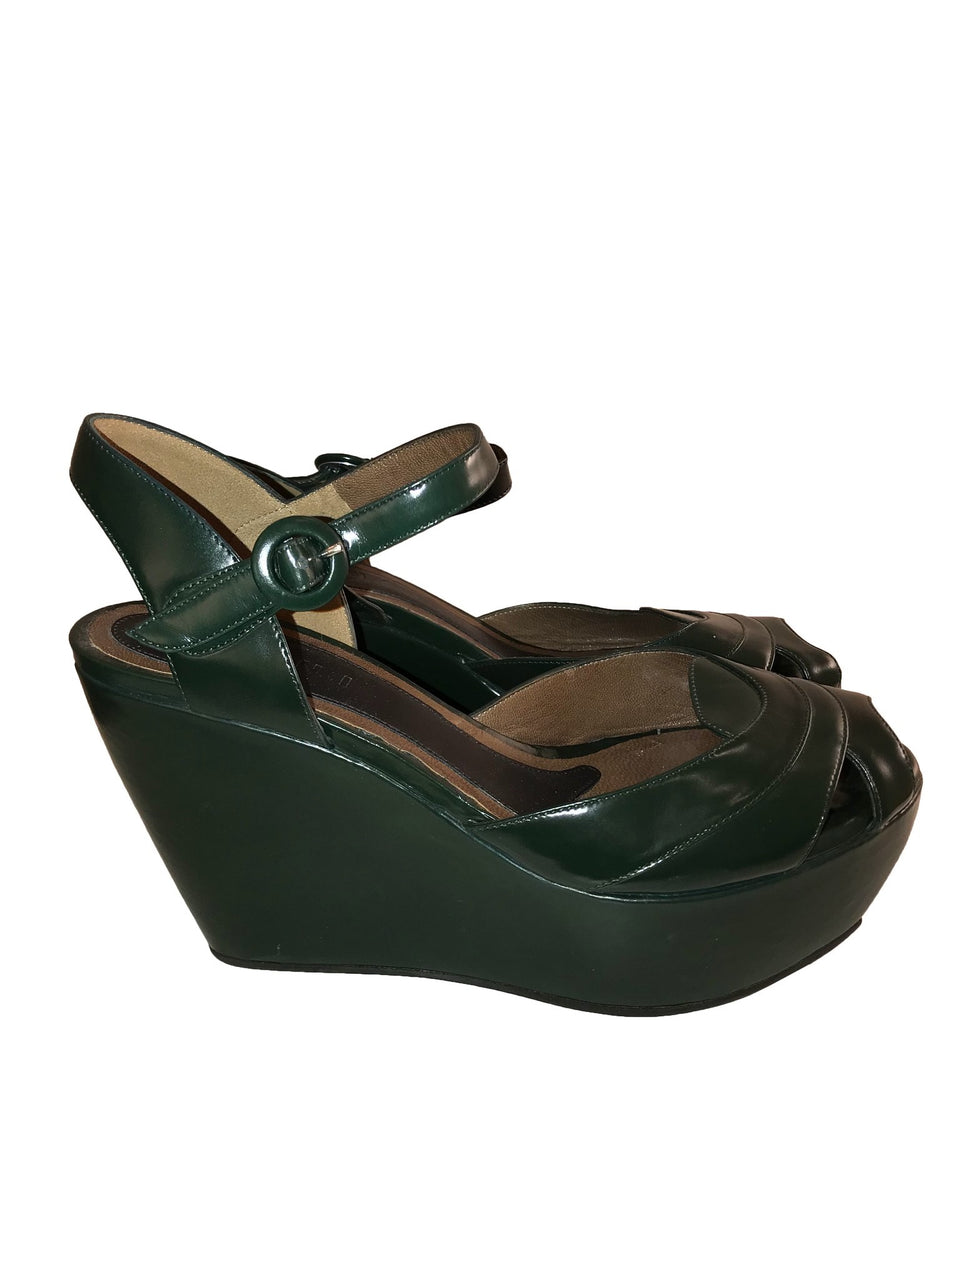 Green Leather Wedge Platform Sandals